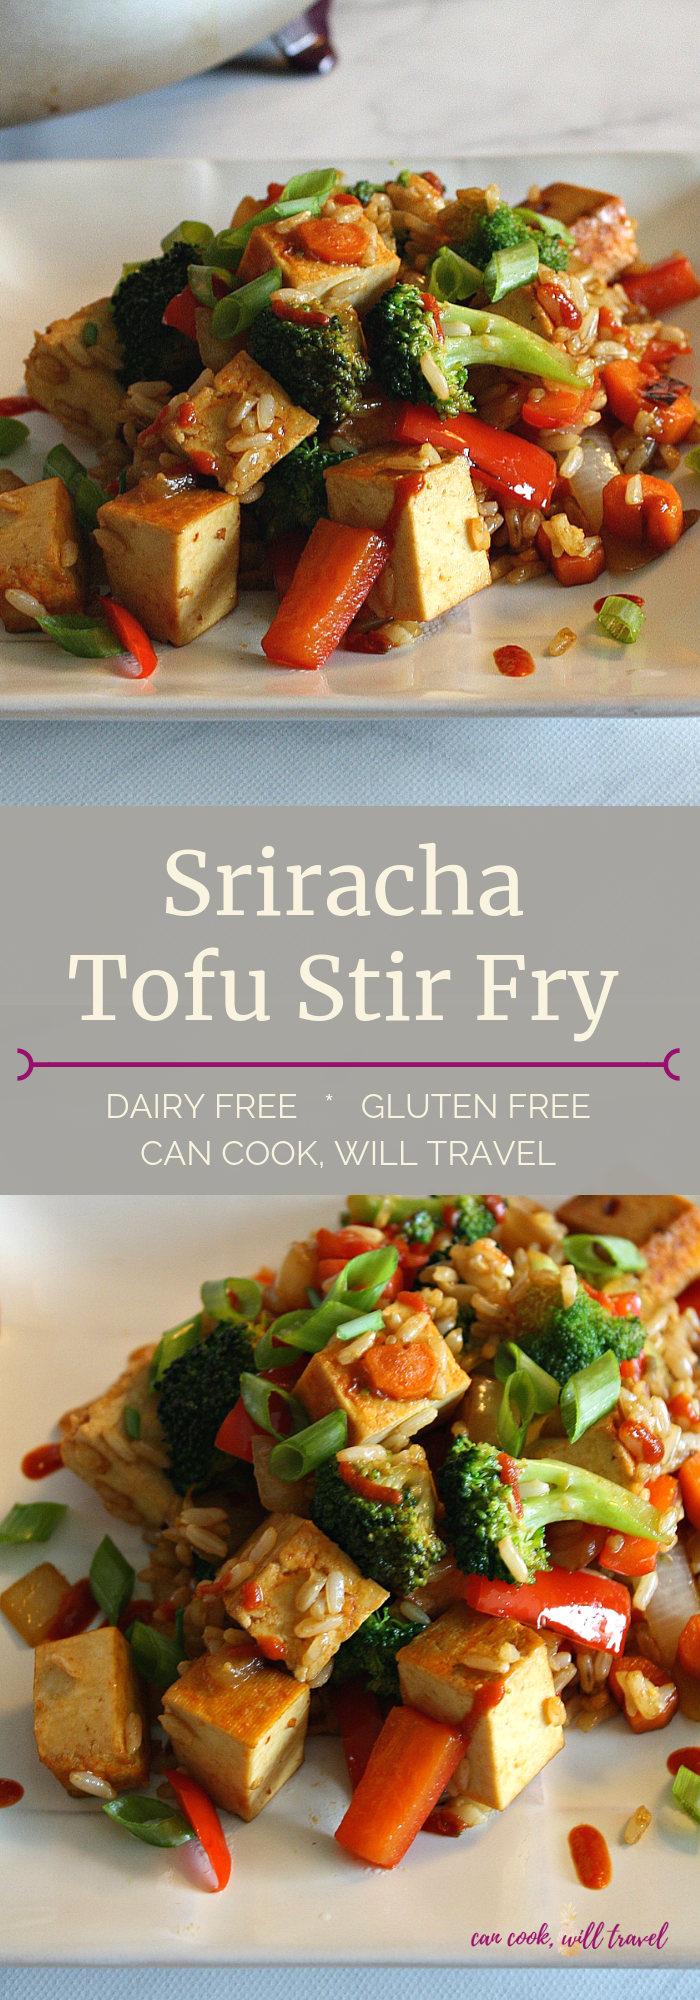 Sriracha Tofu Stir Fry_Collage1